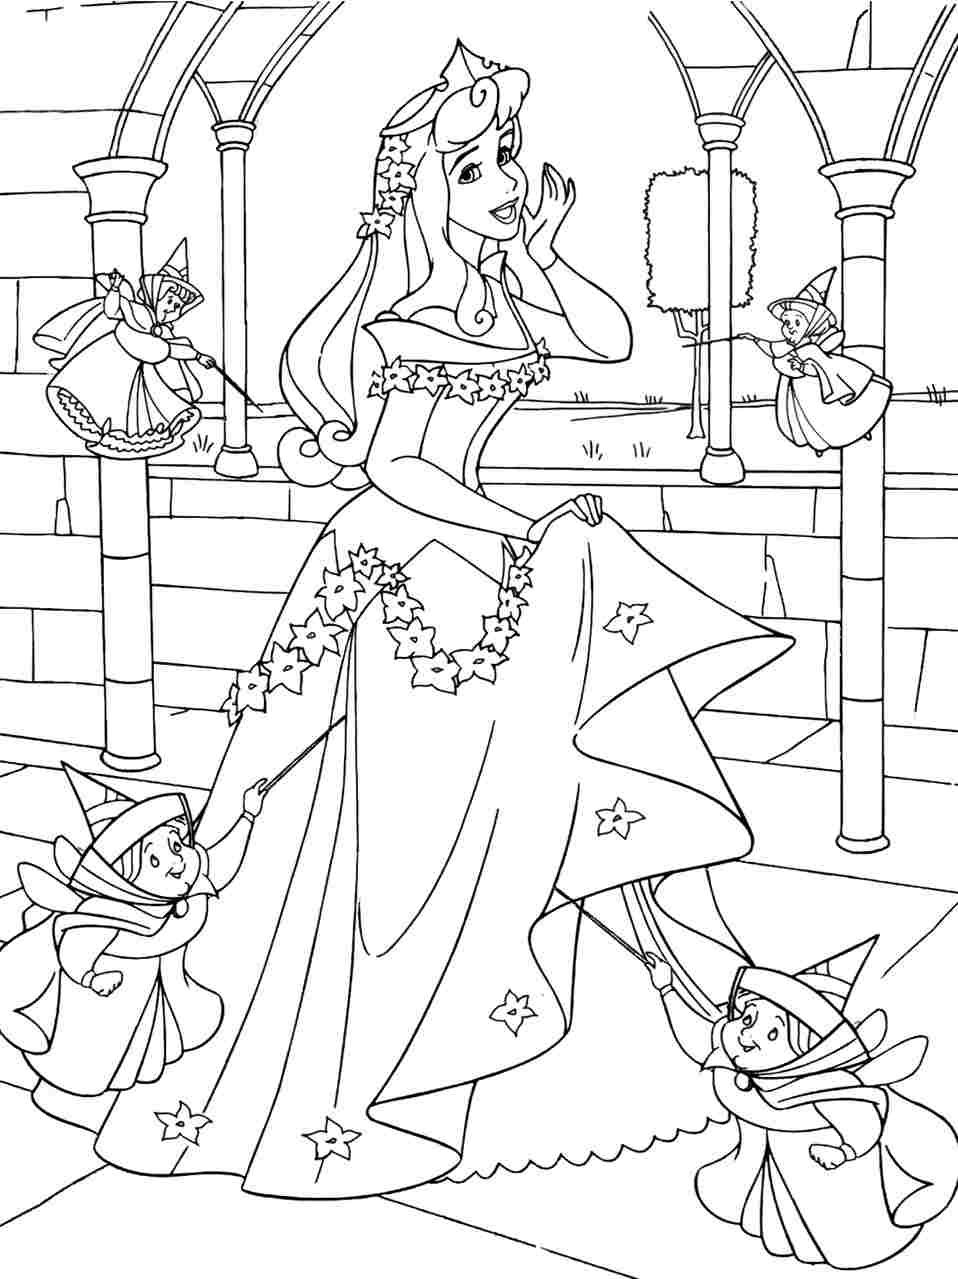 Disney Princess Sleeping Beauty Aurora Colouring Sheets